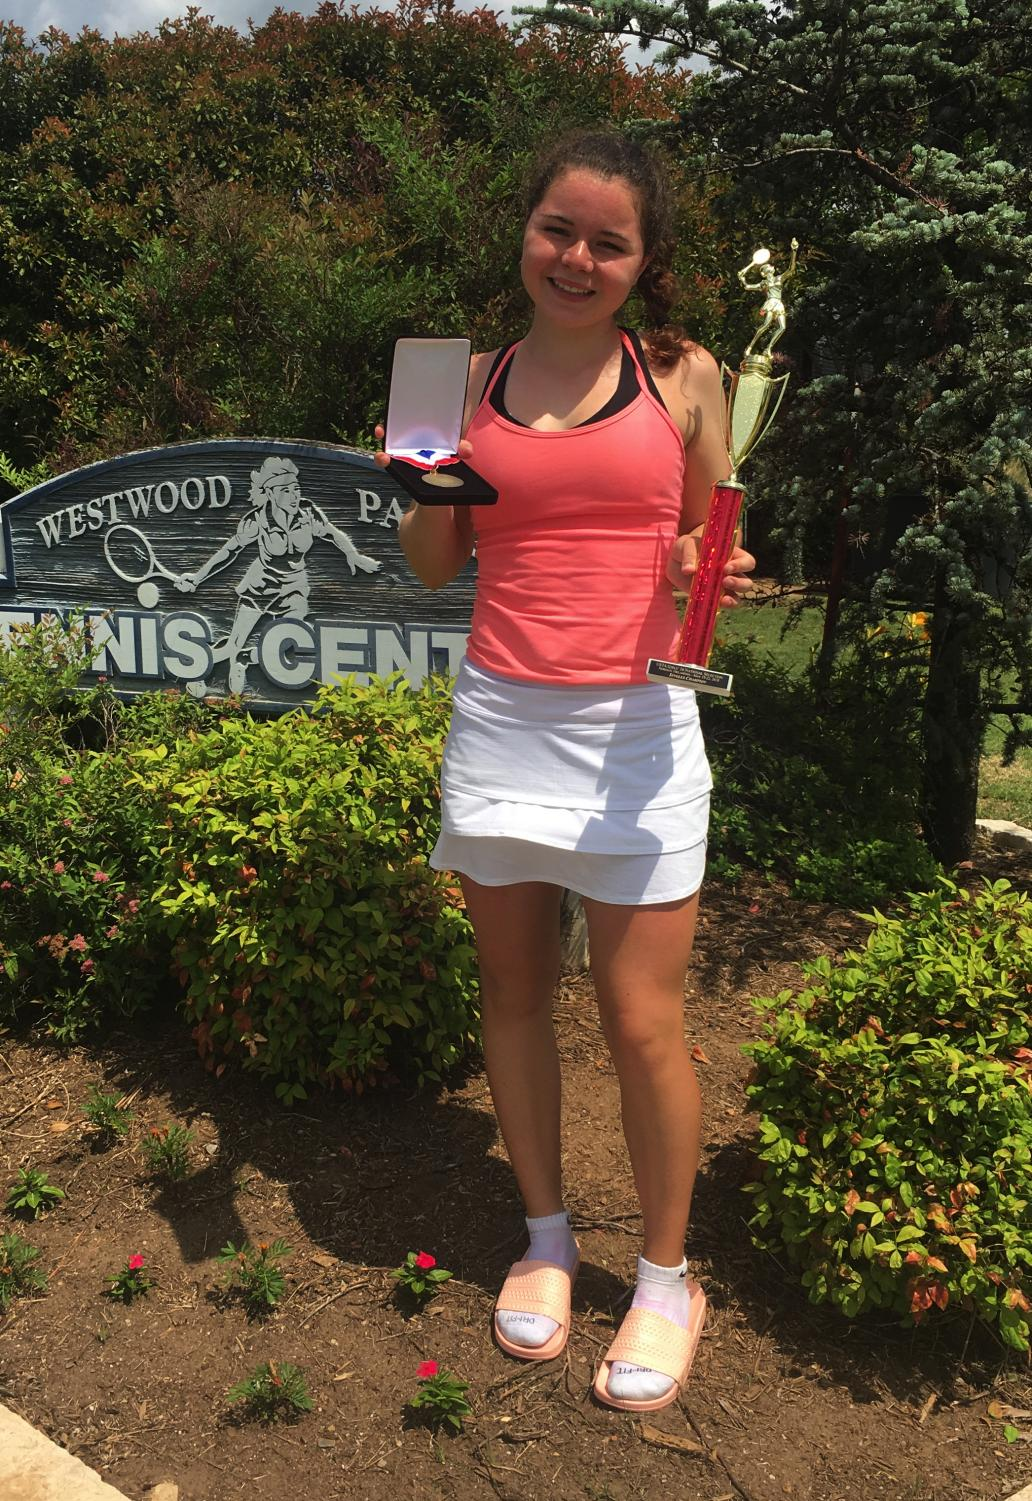 Alli Zipoli celebrates her win at the USTA National Selection Singles Championship